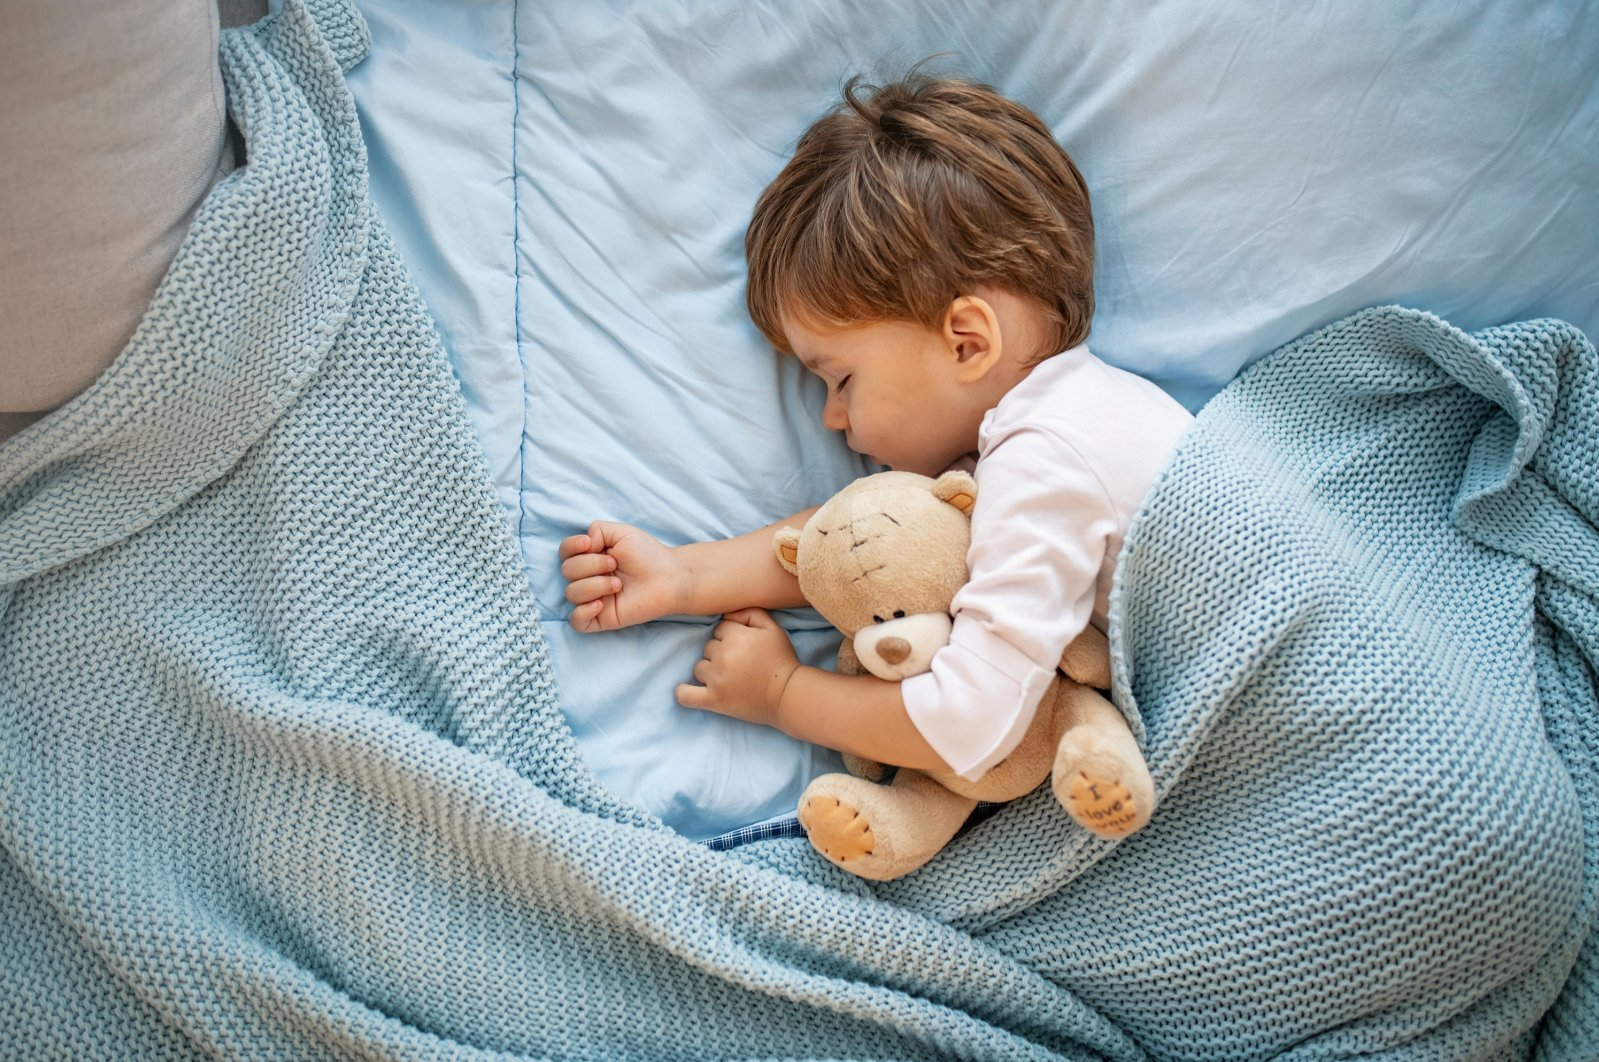 As relaxing as an afternoon nap may be for both parents and the child, at some point it's time to let it go. (Shutterstock Photo)